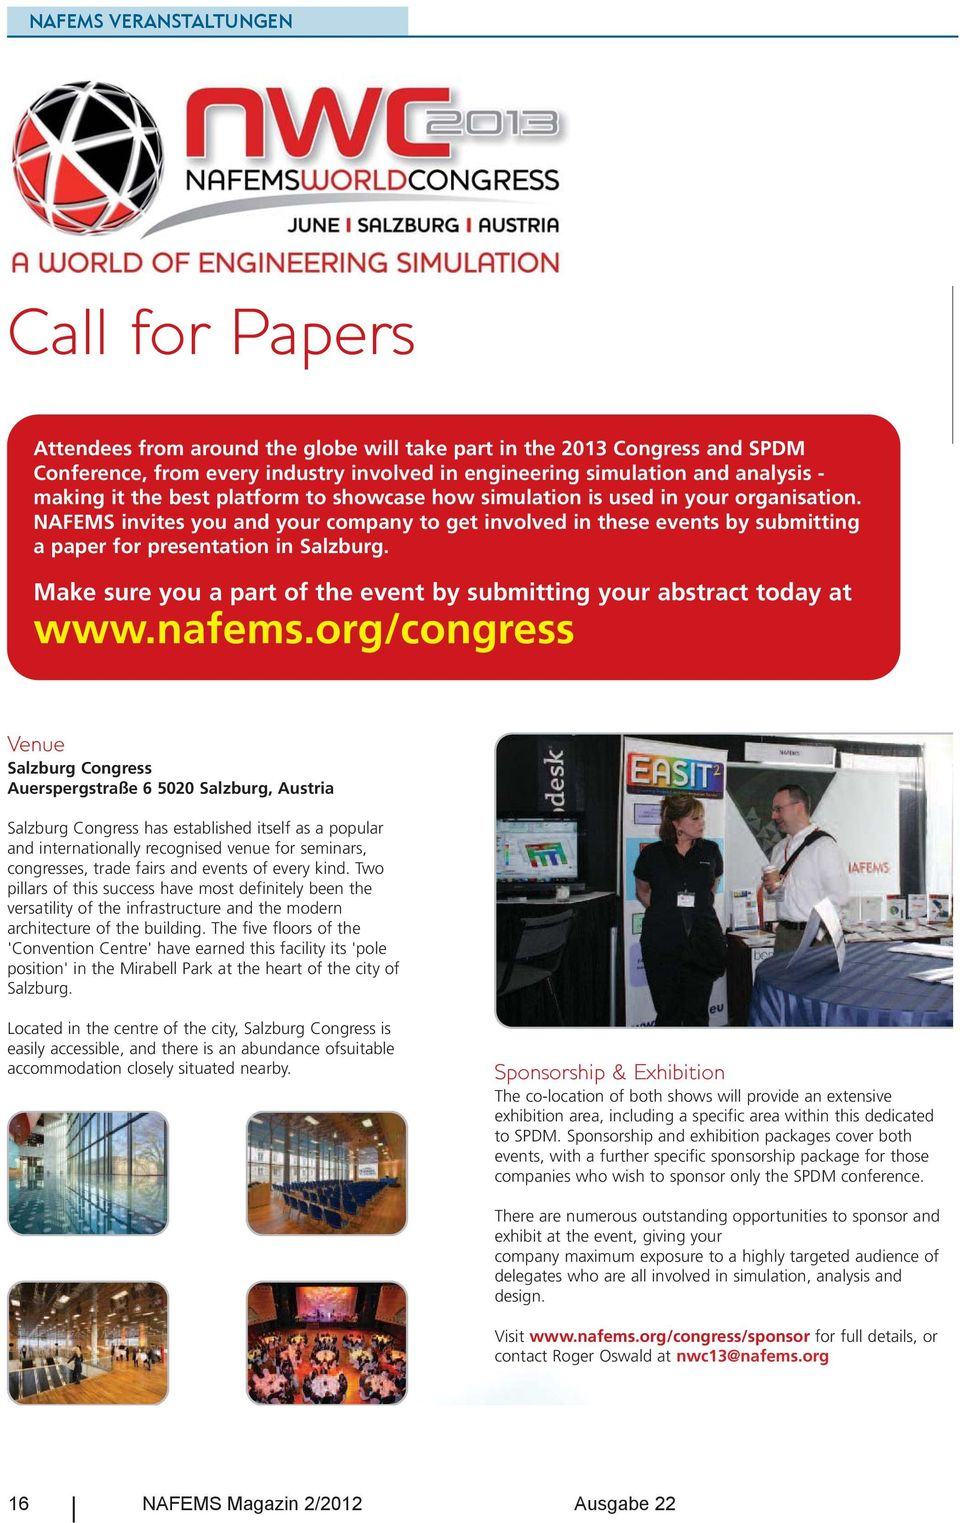 NAFEMS invites you and your company to get involved in these events by submitting a paper for presentation in Salzburg. Make sure you a part of the event by submitting your abstract today at www.